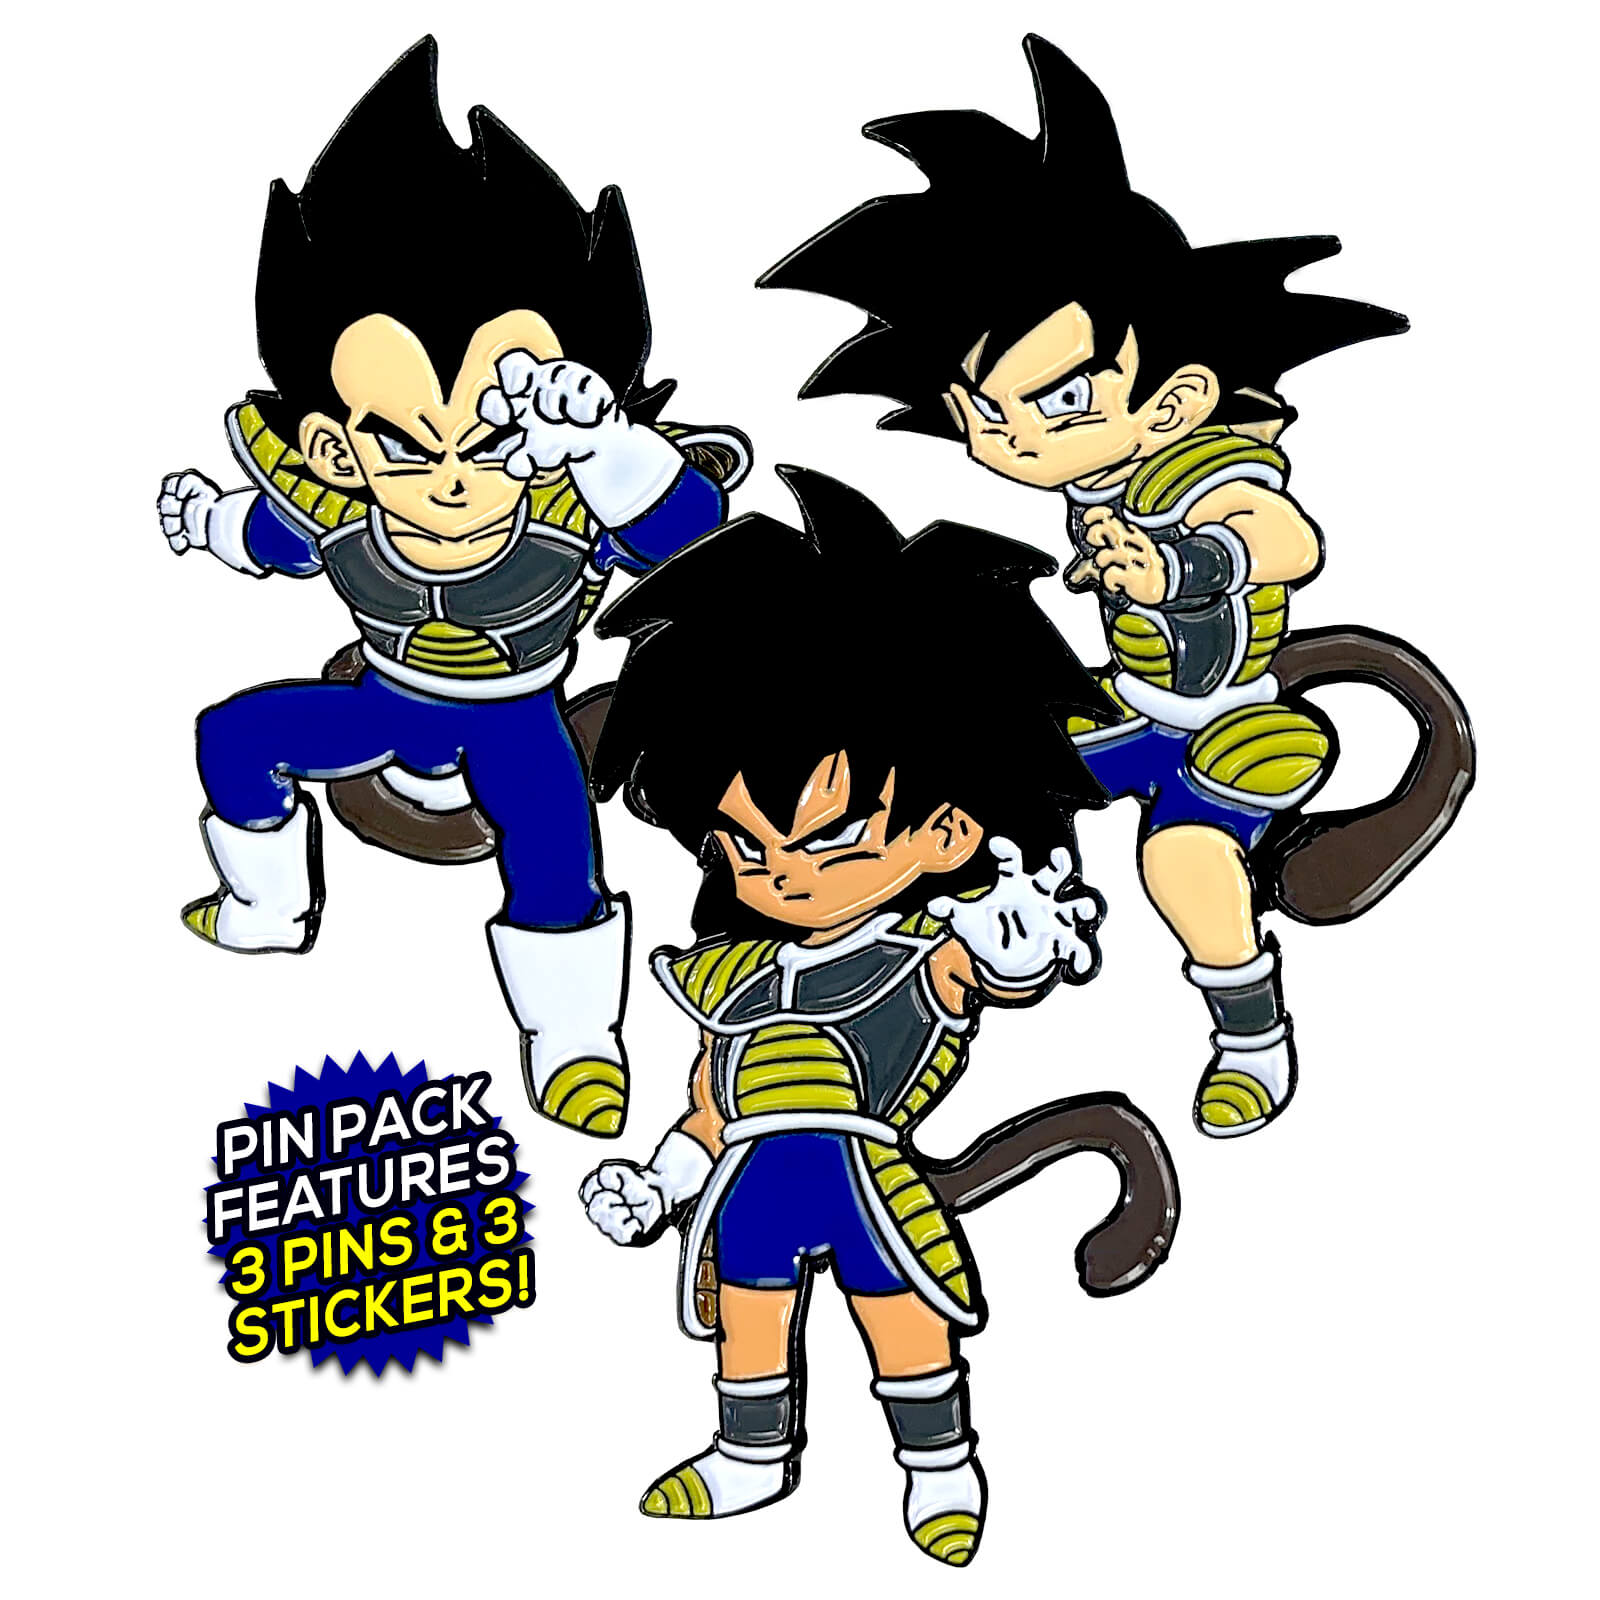 Kid Saiyans [DBS Broly Movie] (3 Pin) Pin Pack [Includes 3 FREE Stickers]